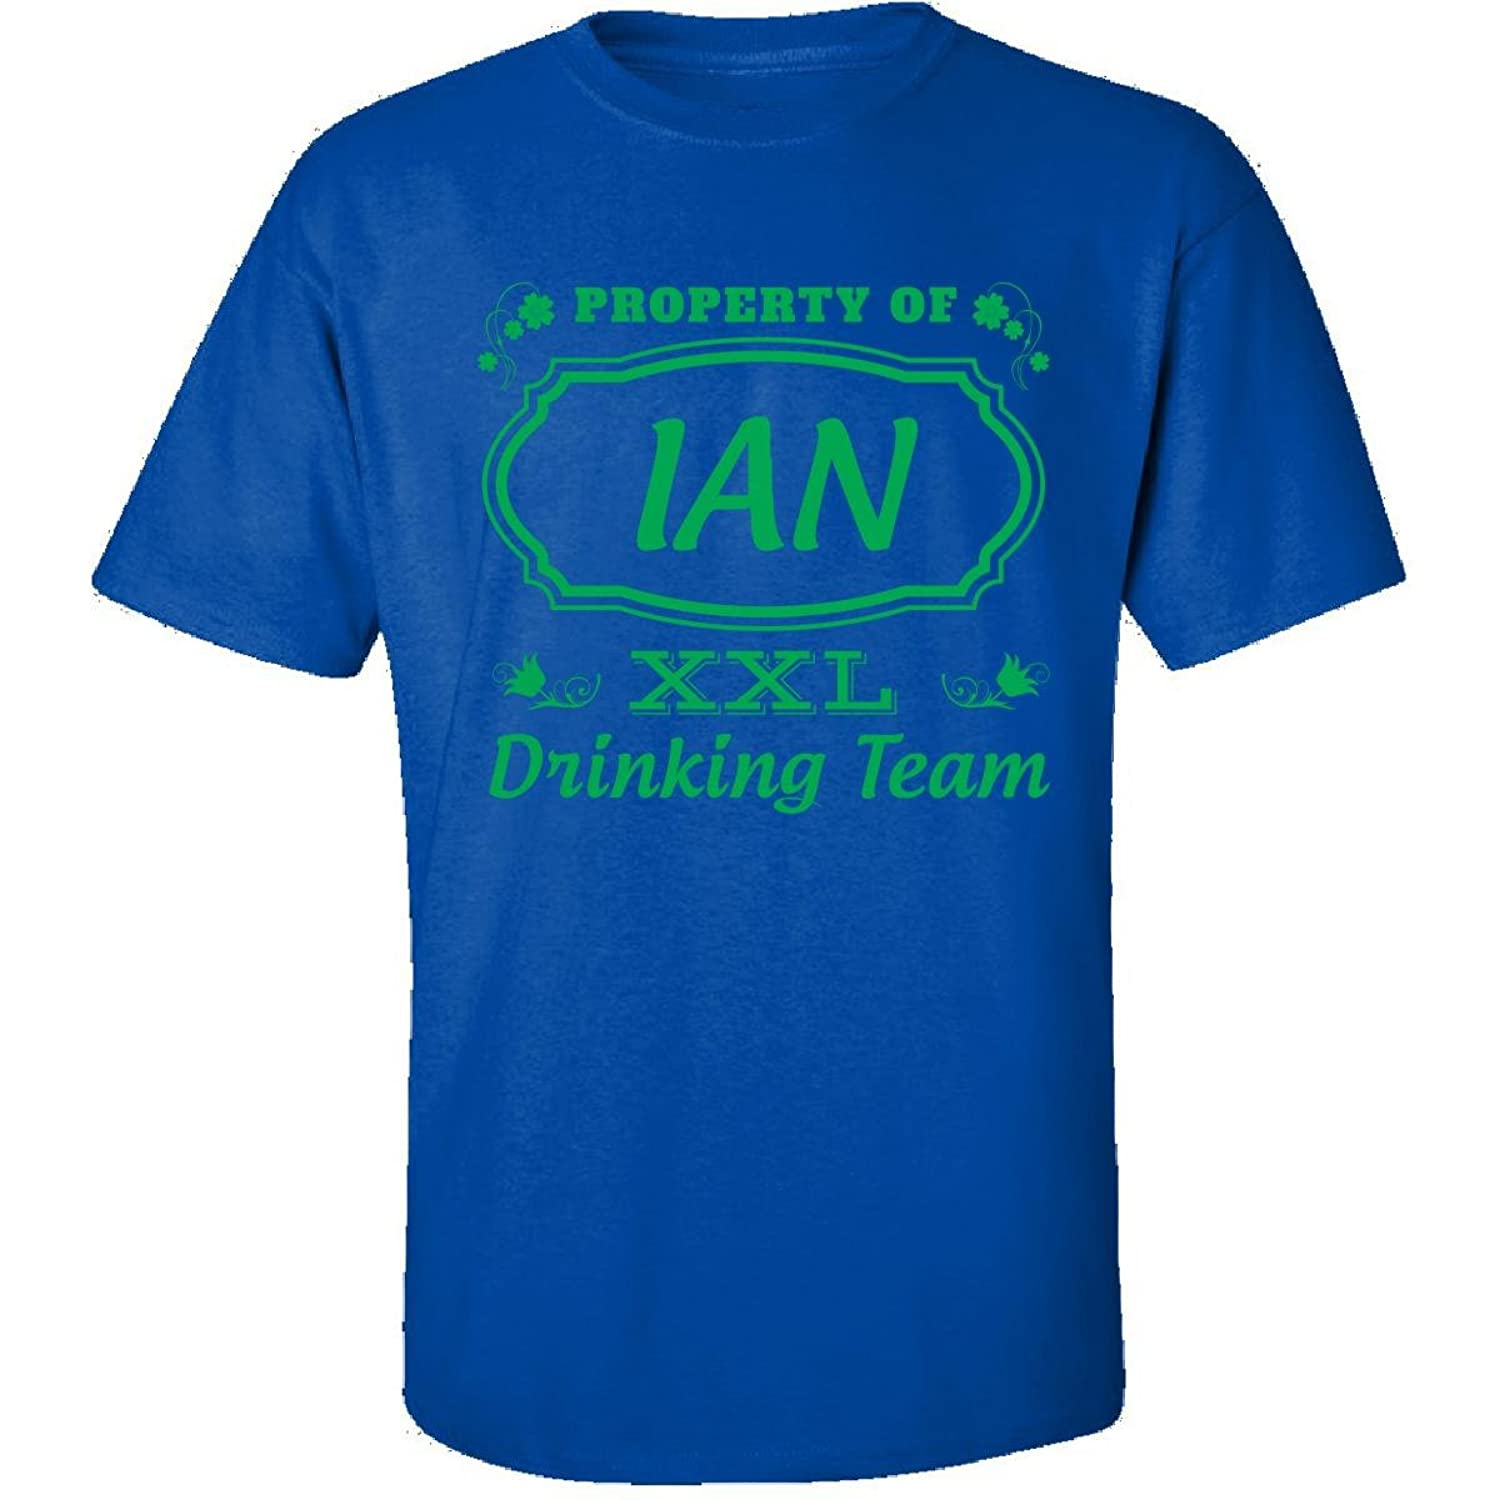 Property Of Ian St Patrick Day Beer Drinking Team - Adult Shirt